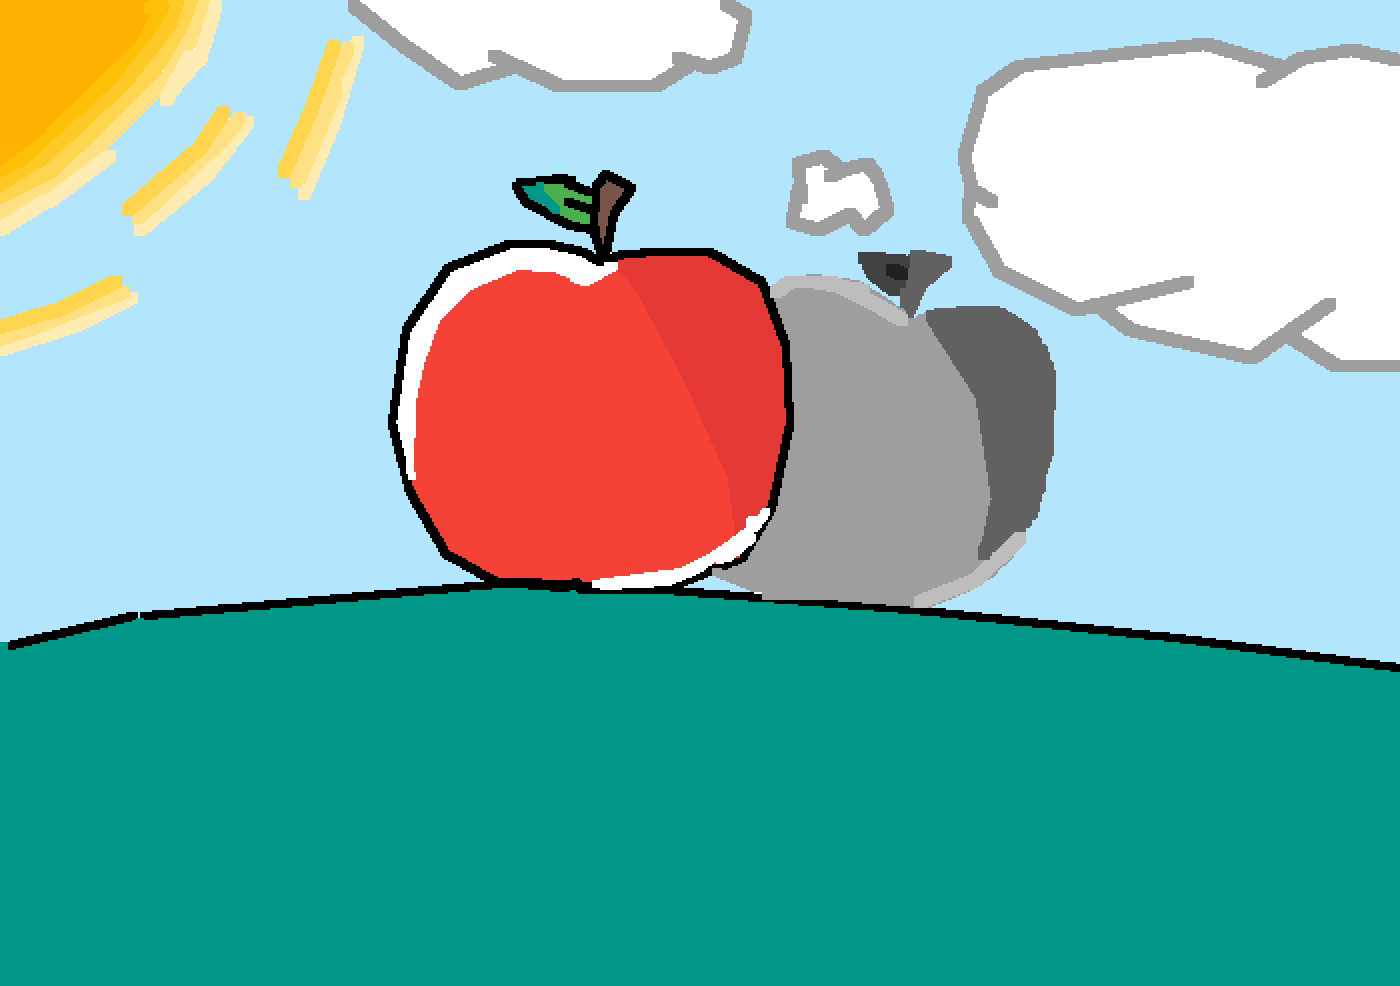 main-image-2 apples